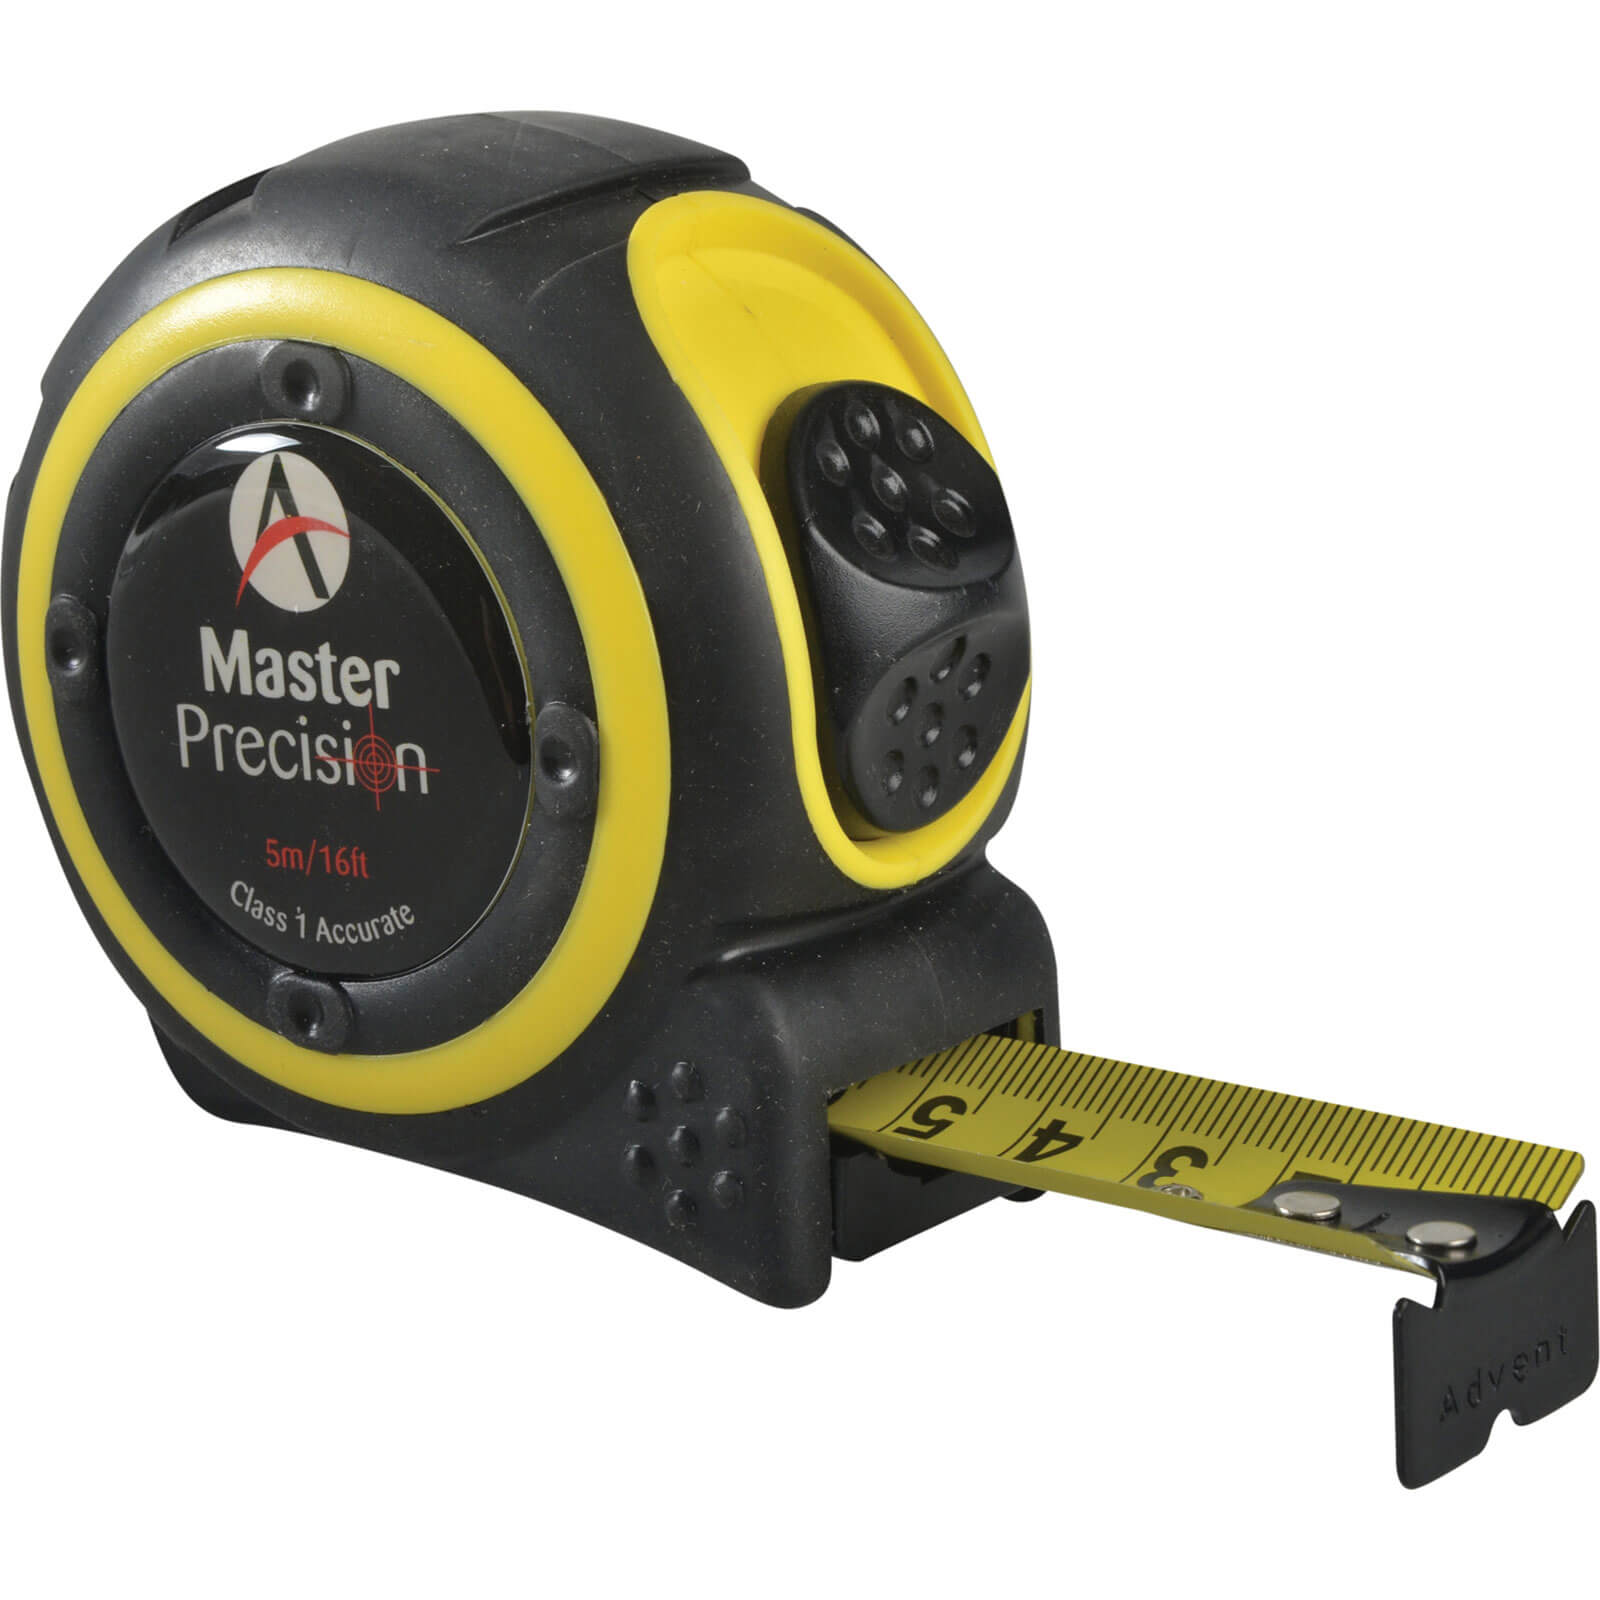 Click to view product details and reviews for Advent Master Precision Class 1 Tape Measure Imperial Metric 16ft 5m 25mm.